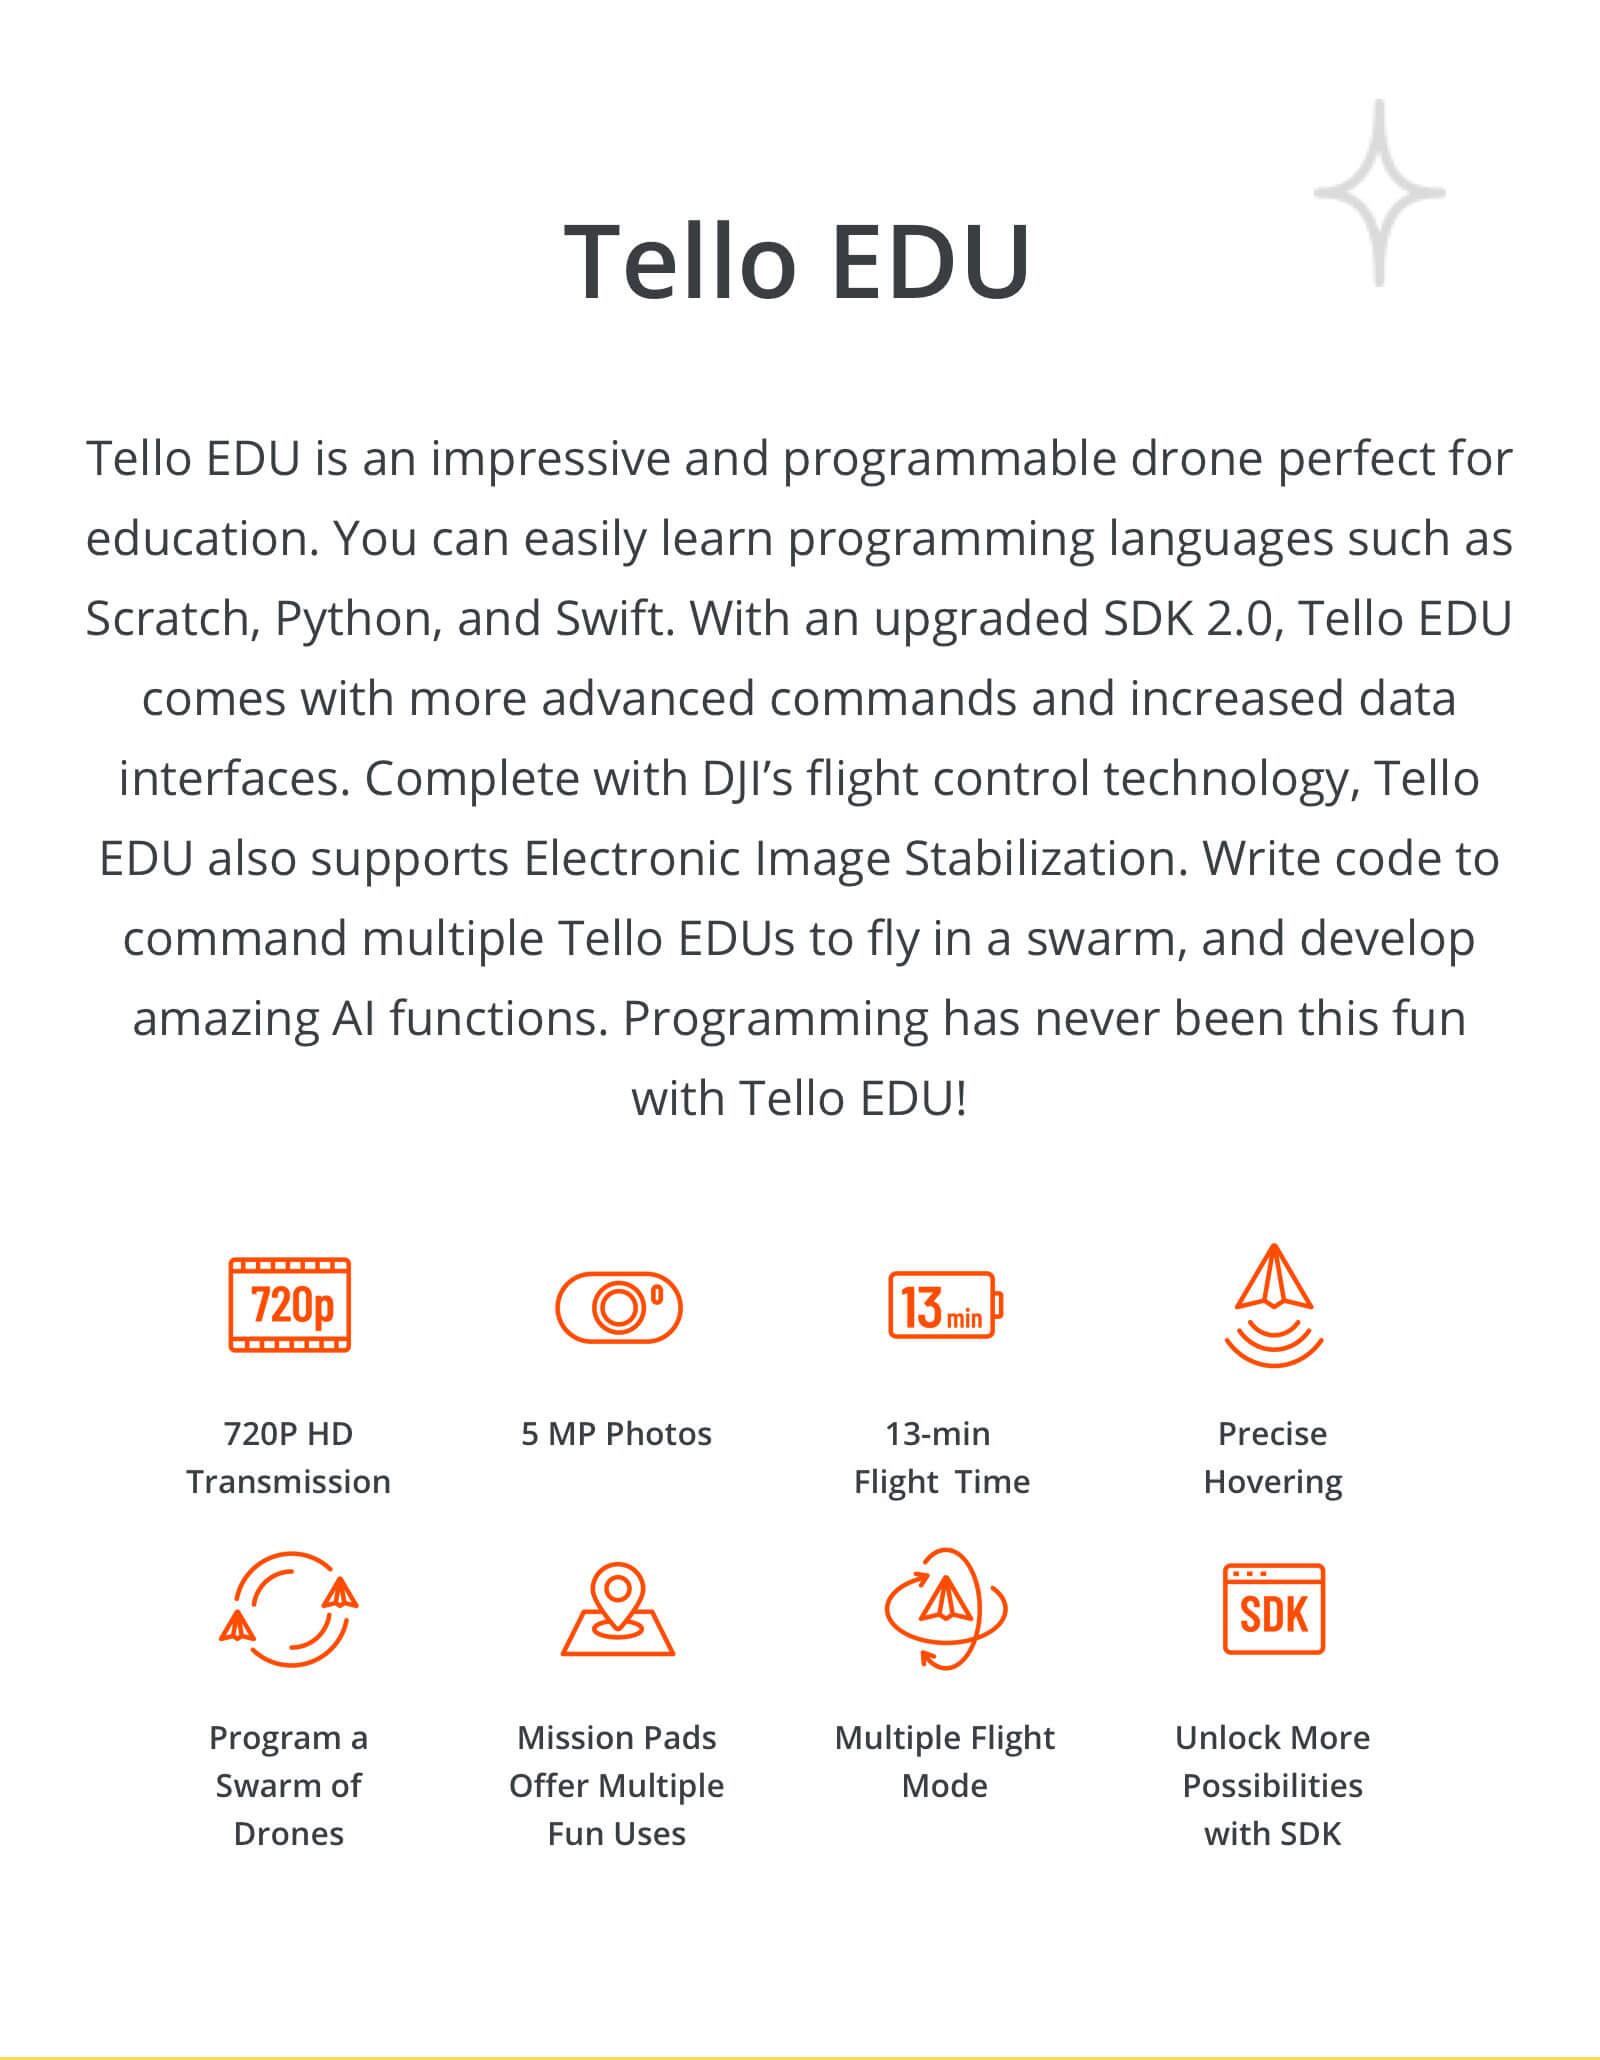 tello-edu-es-800-copy-2_02.jpg